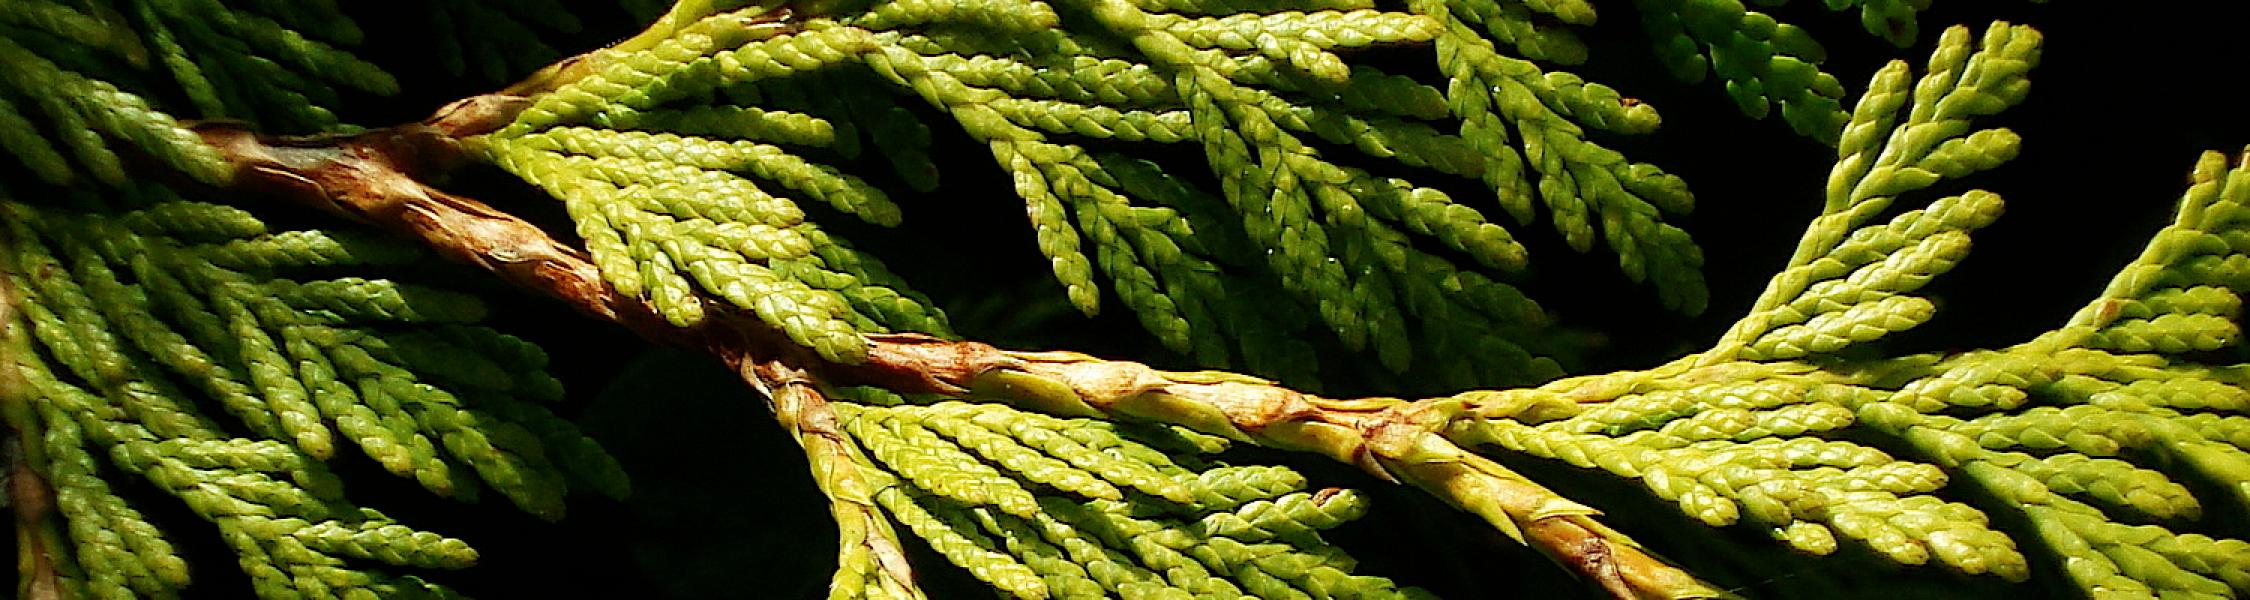 close up photo of evergreen tree branch